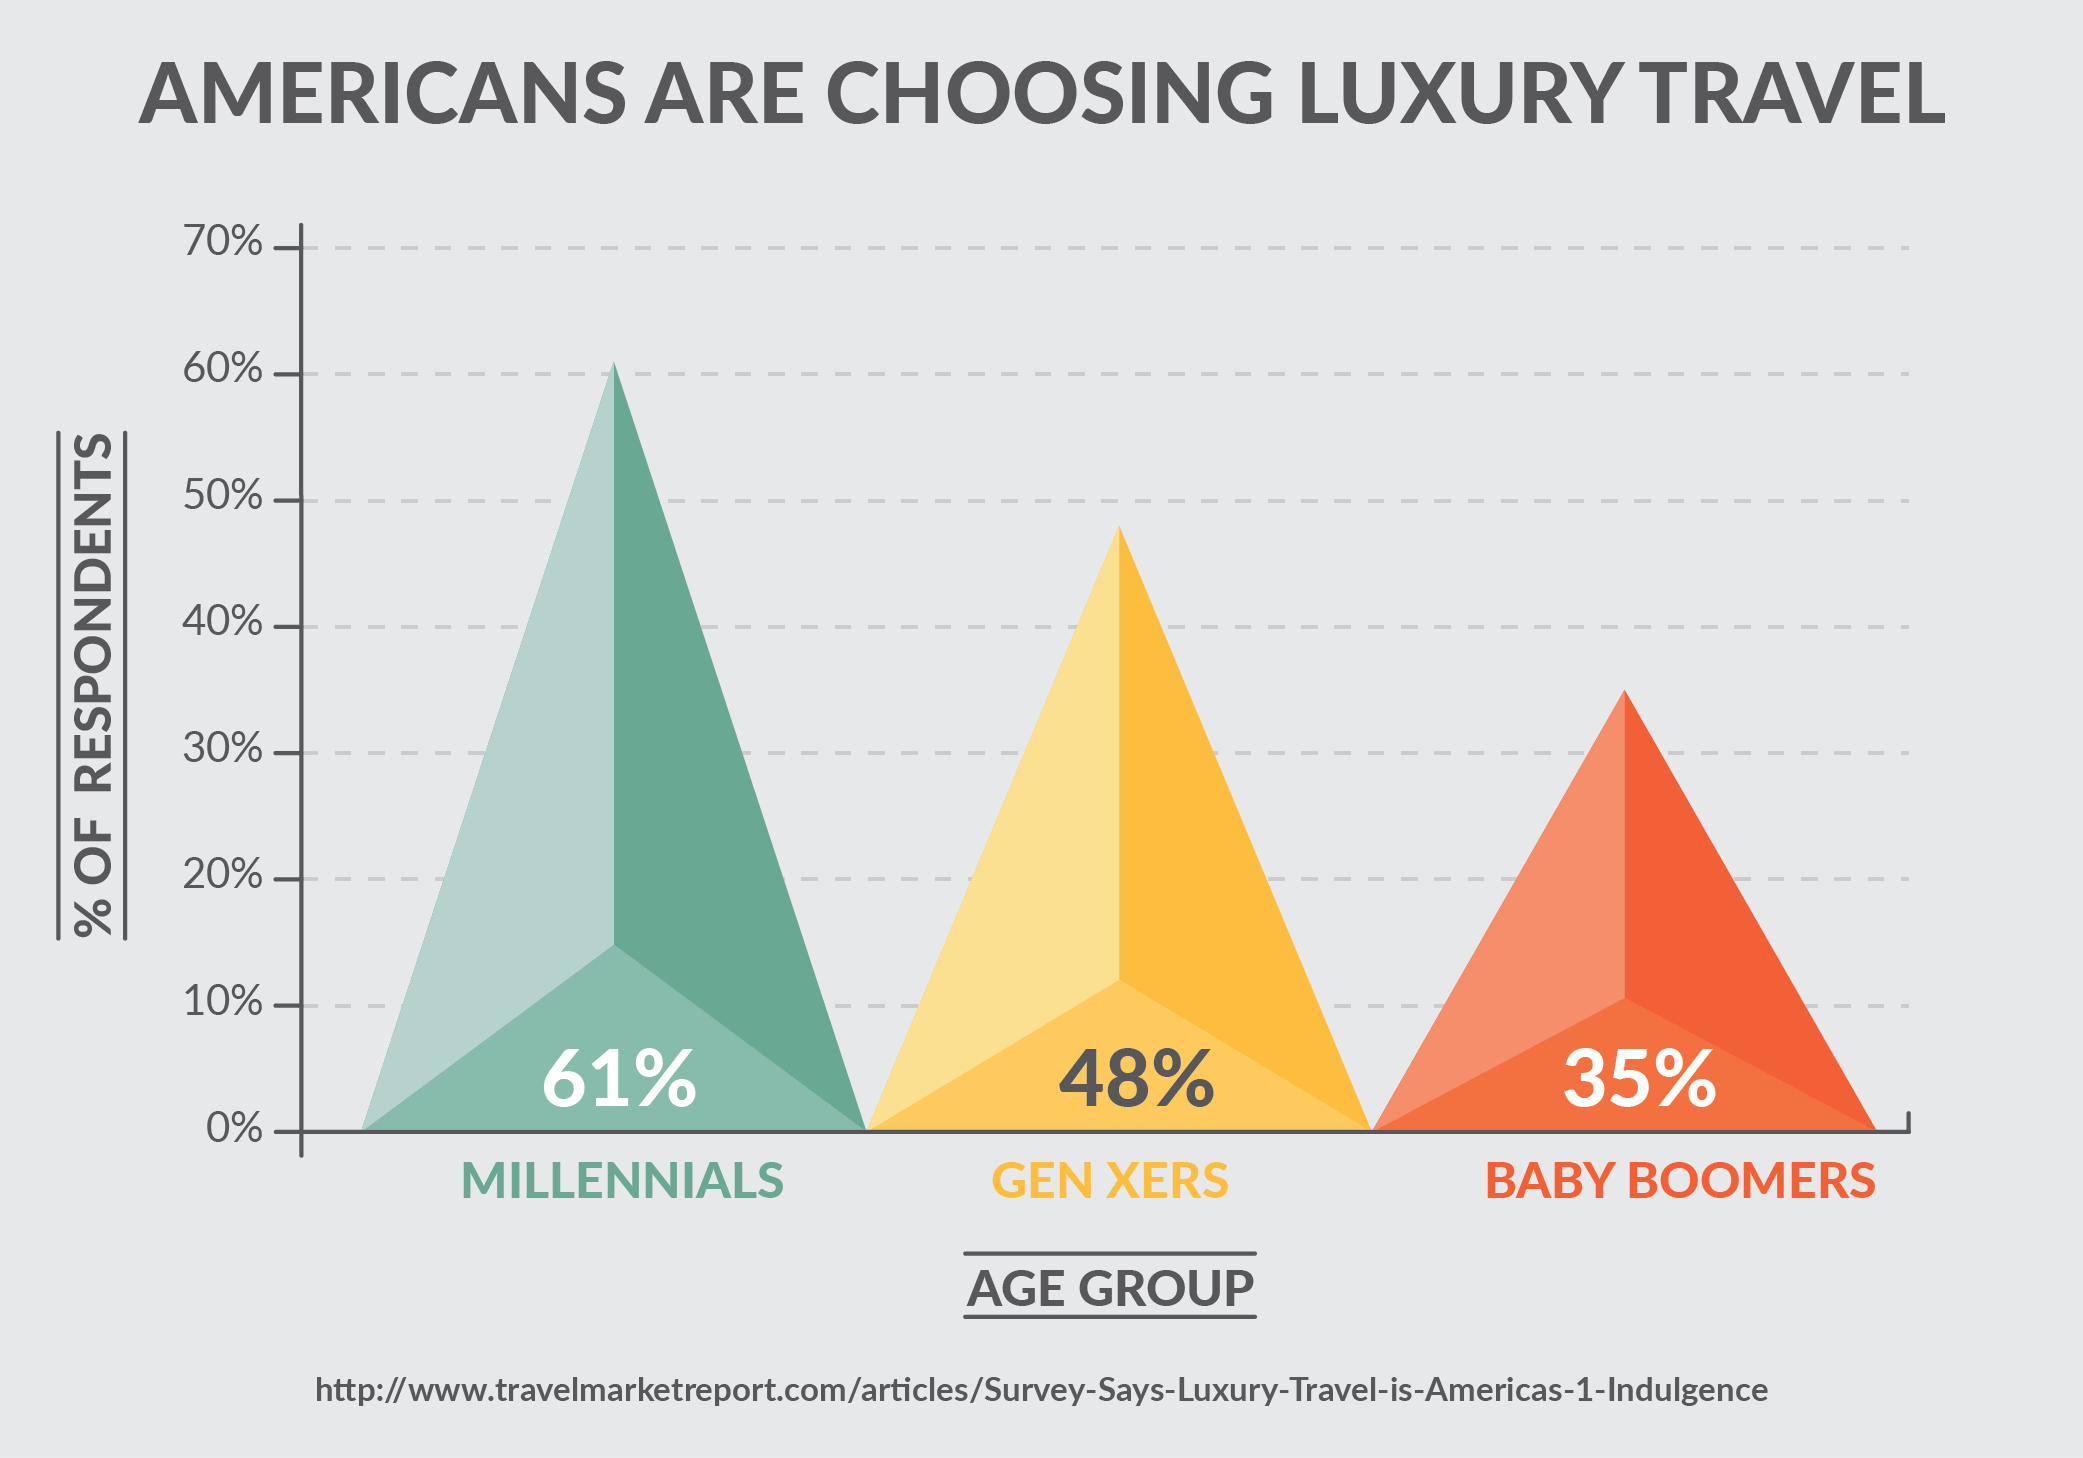 Travelers Are Choosing Full or Selective Luxury Travel (2017)